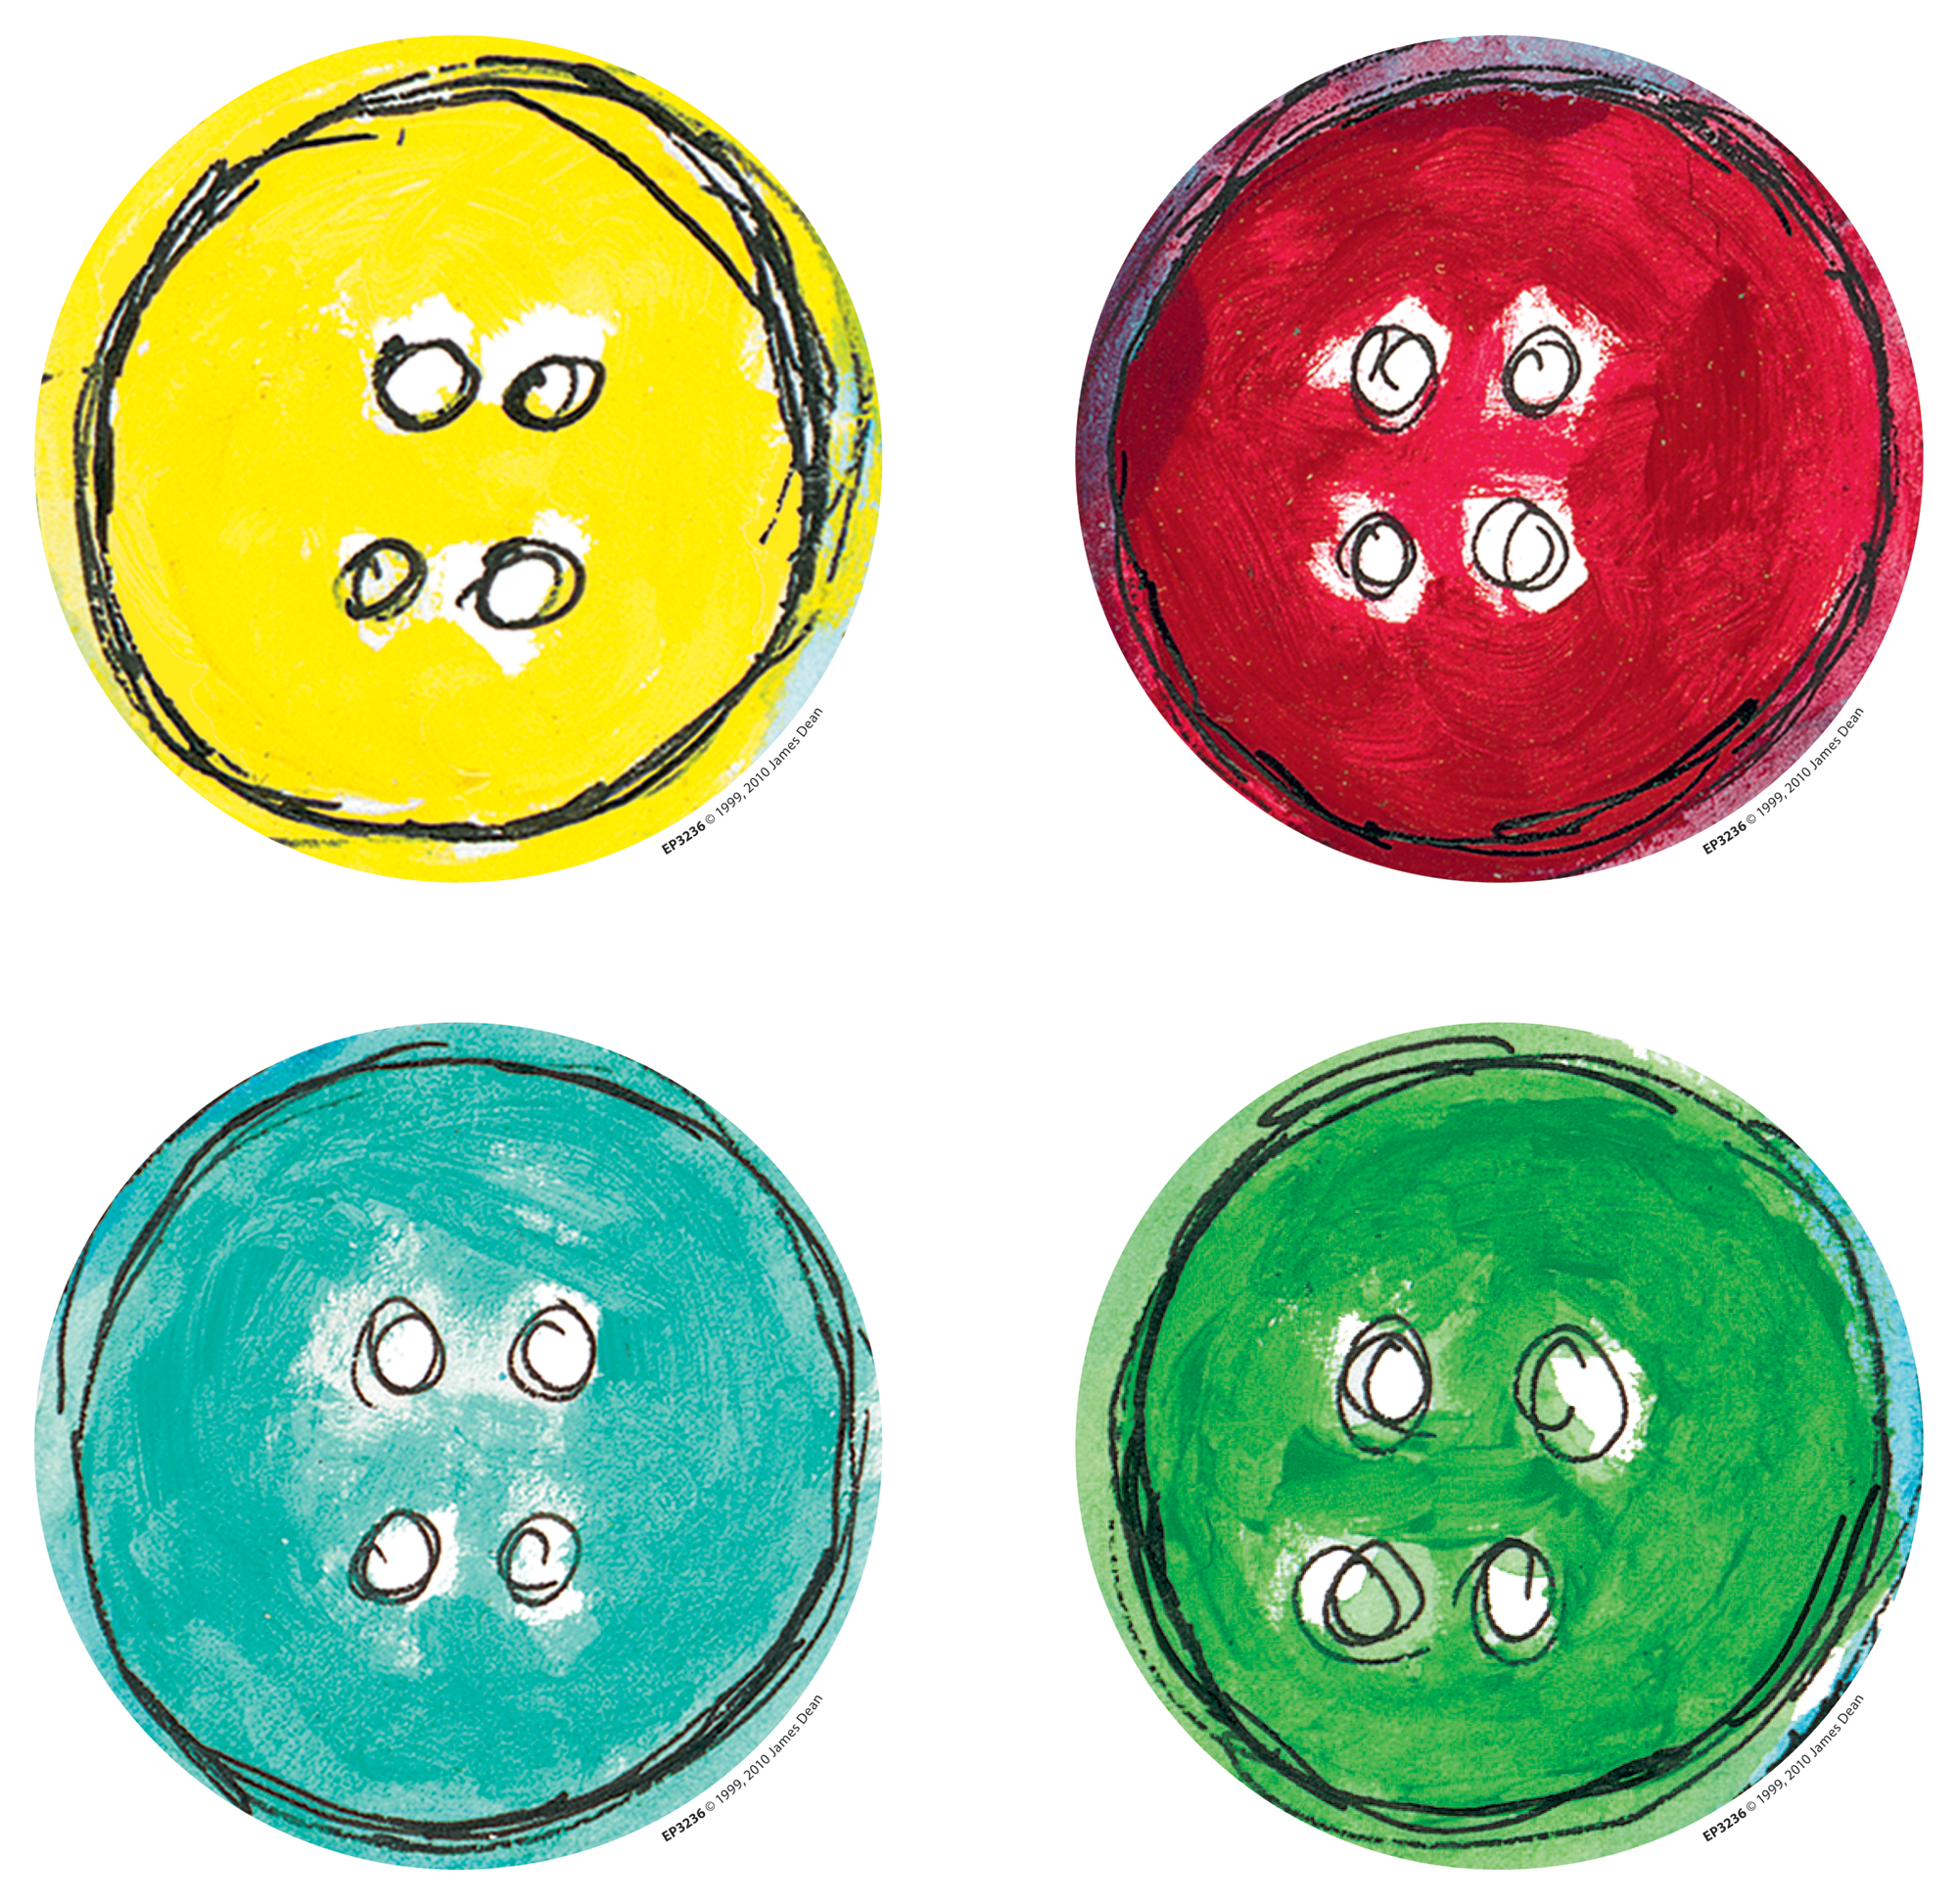 Button clipart pete the cat. Groovy buttons accents cats